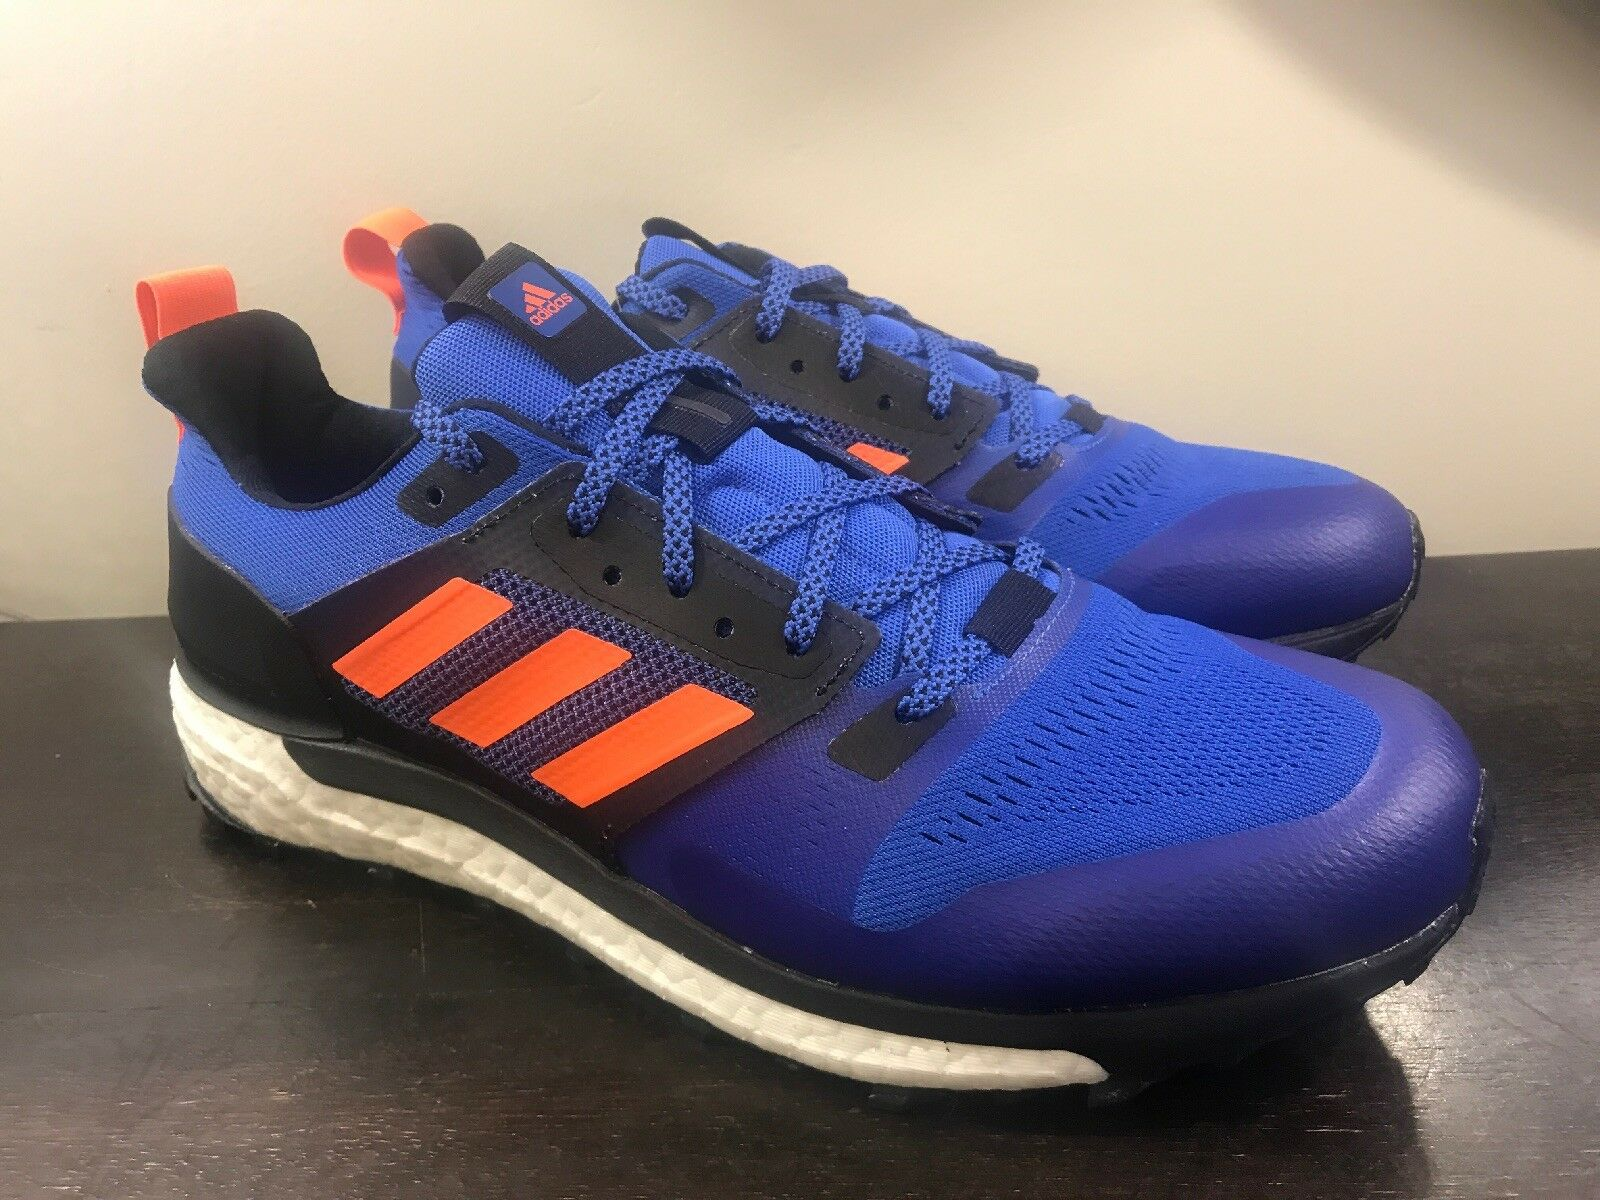 Adidas Men  65533;s Supernova Boost blu Athletic Hiking Trail scarpe Dimensione 11.5 BB666666662  i nuovi marchi outlet online